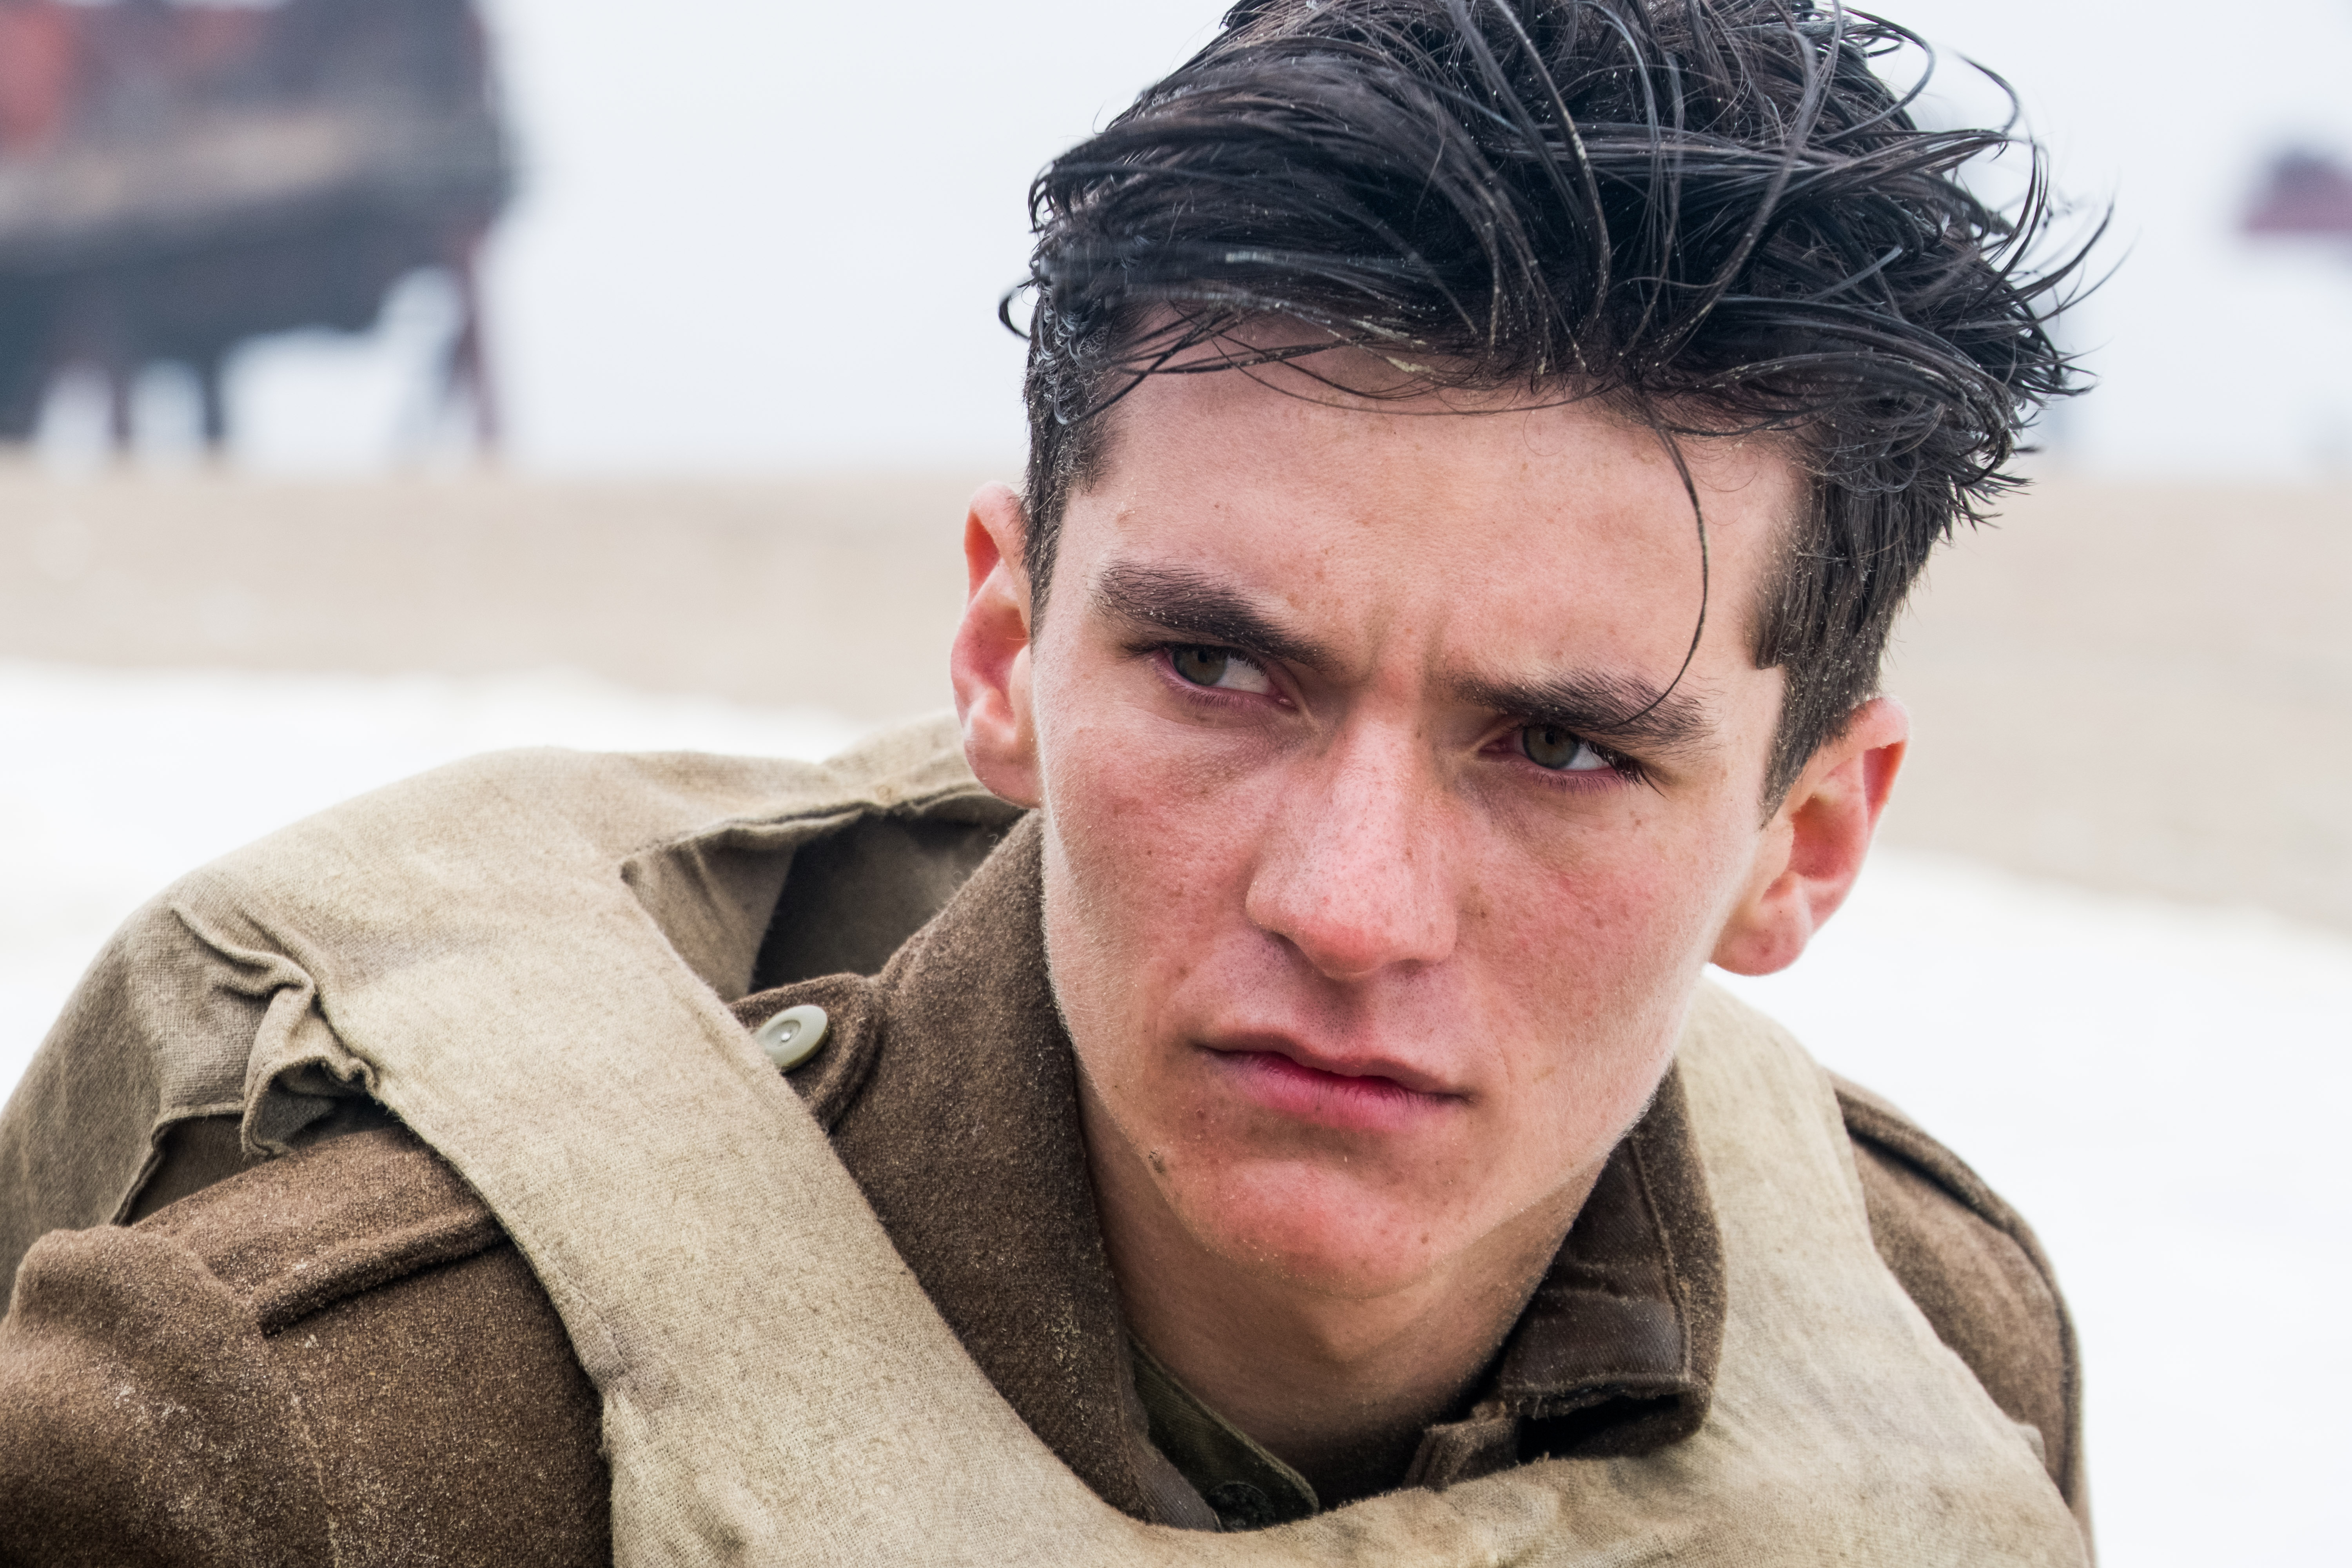 Fionn Whitehead stars as Tommy in Dunkirk.